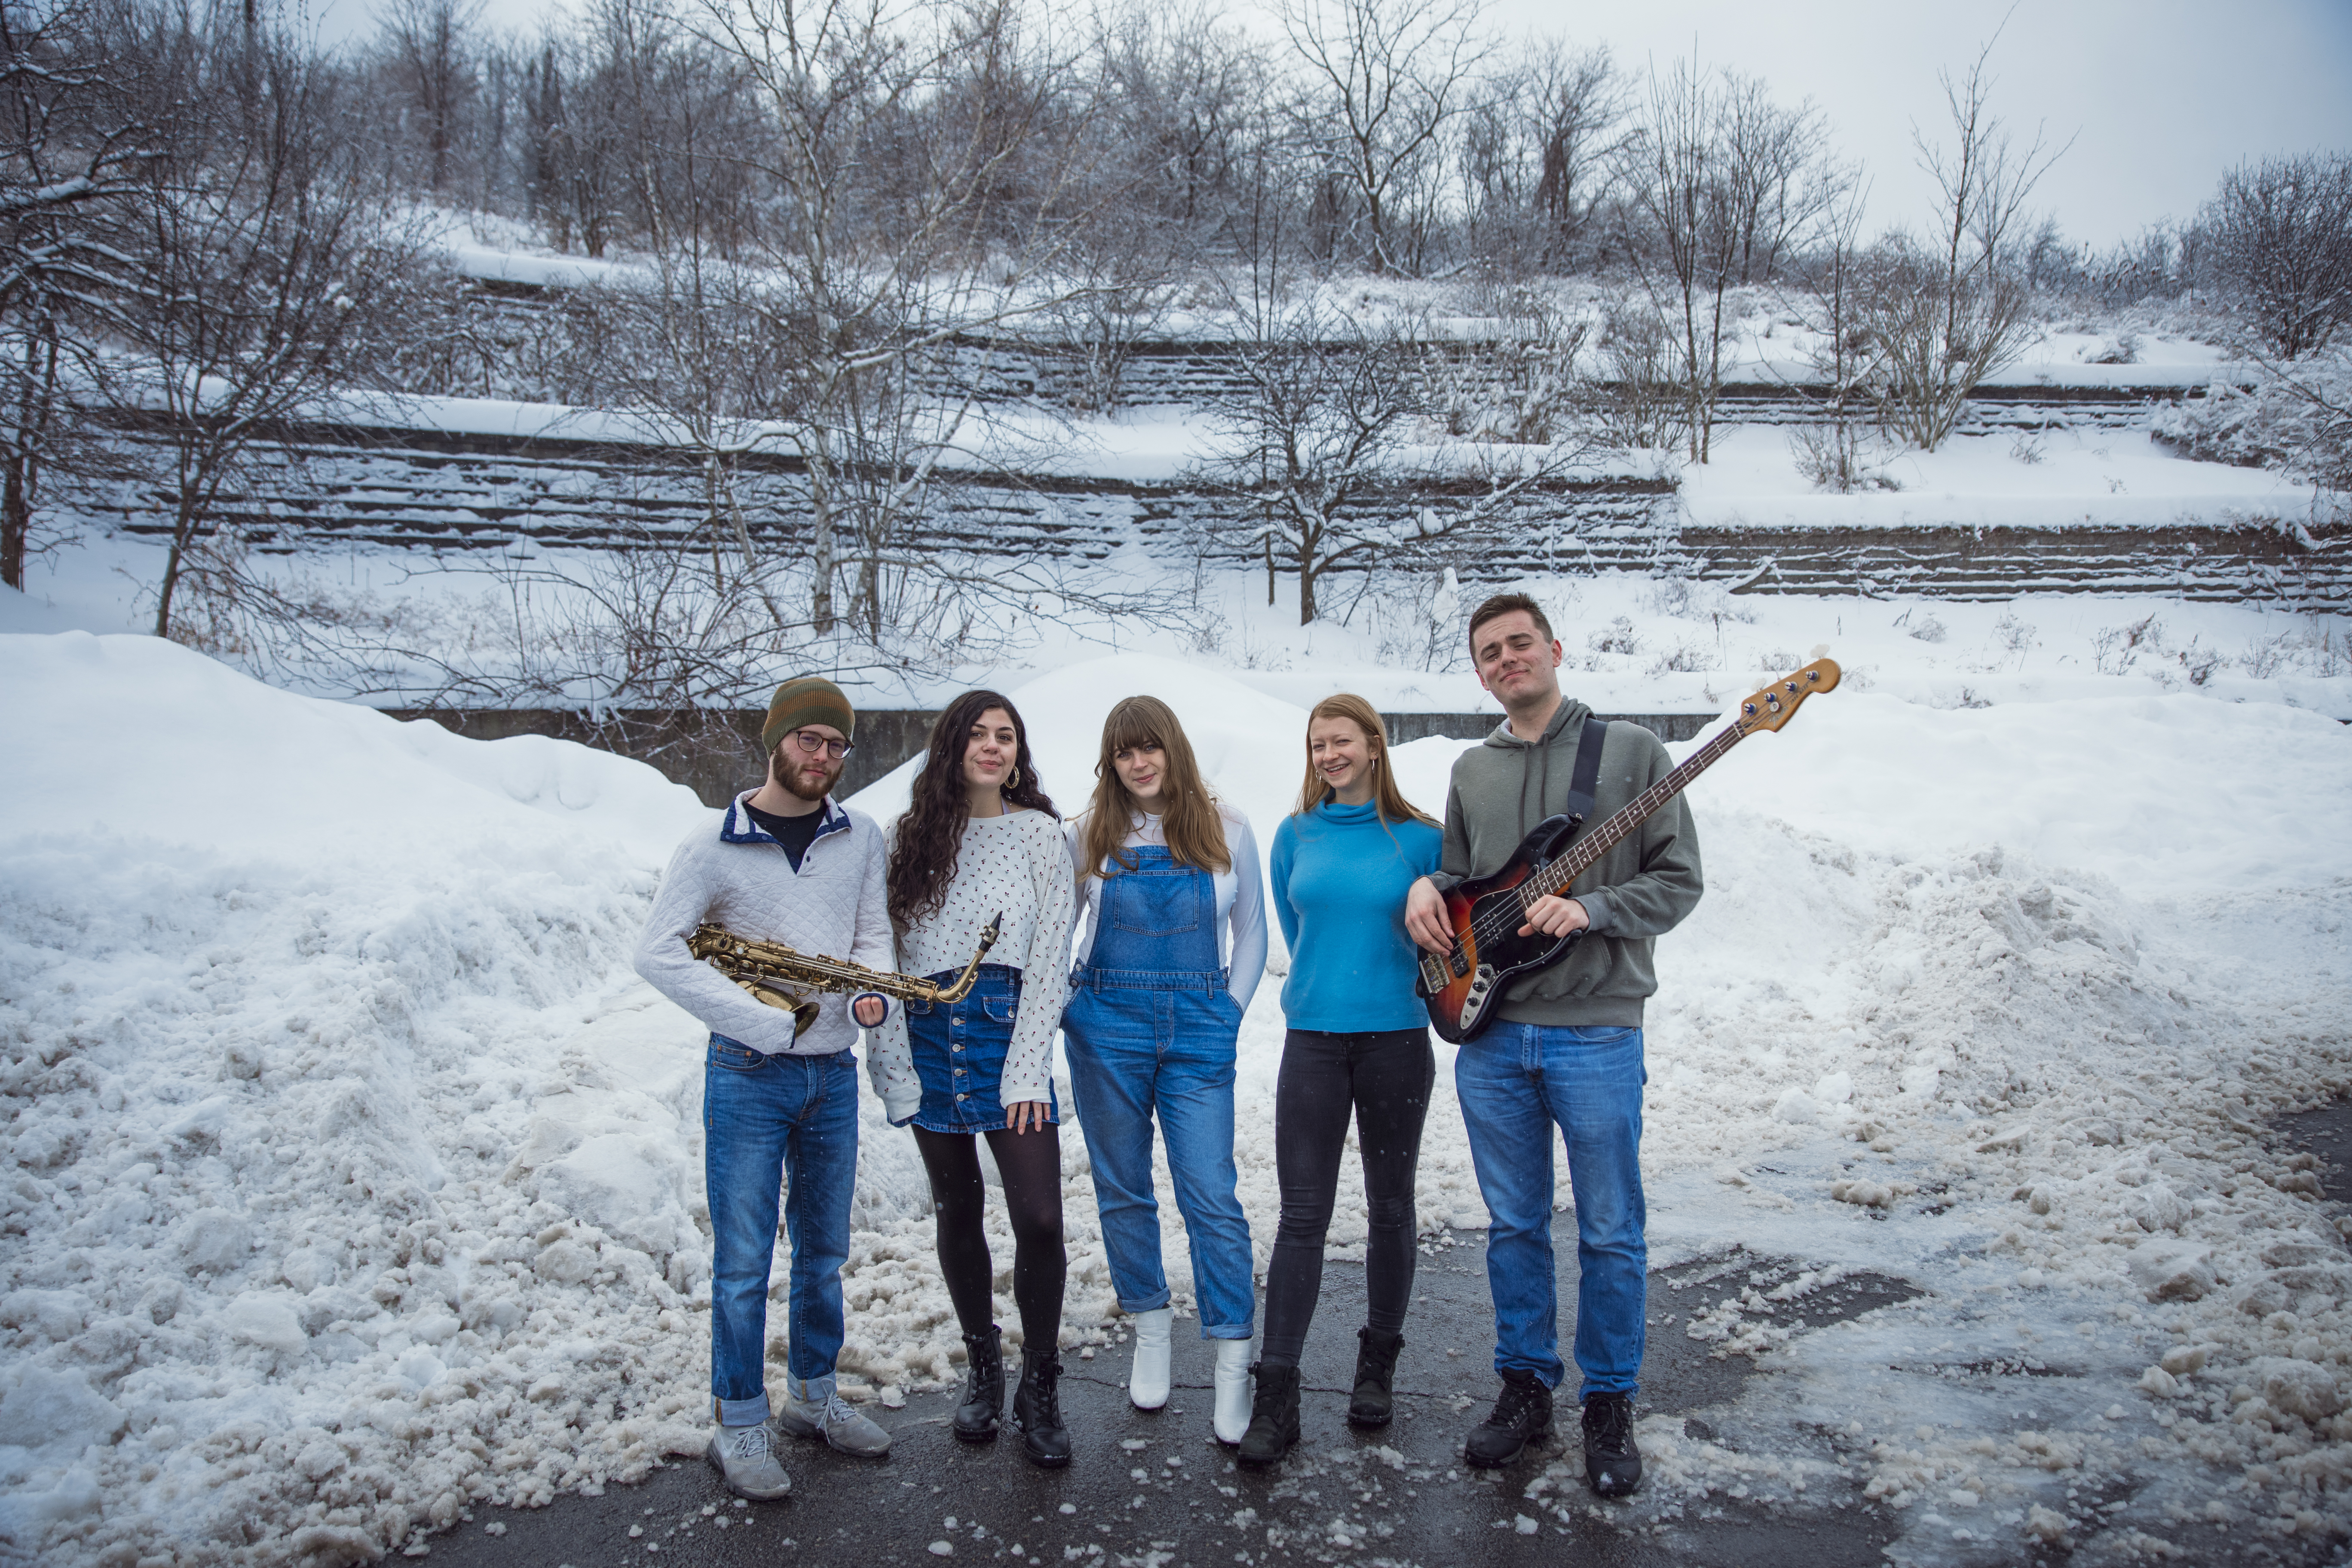 Sarah Gross and her band (From Left to Right) Nick Peta, Gillian Pelkonen, Sarah Gross, Lauren Goodyear, Mitchell Taylor